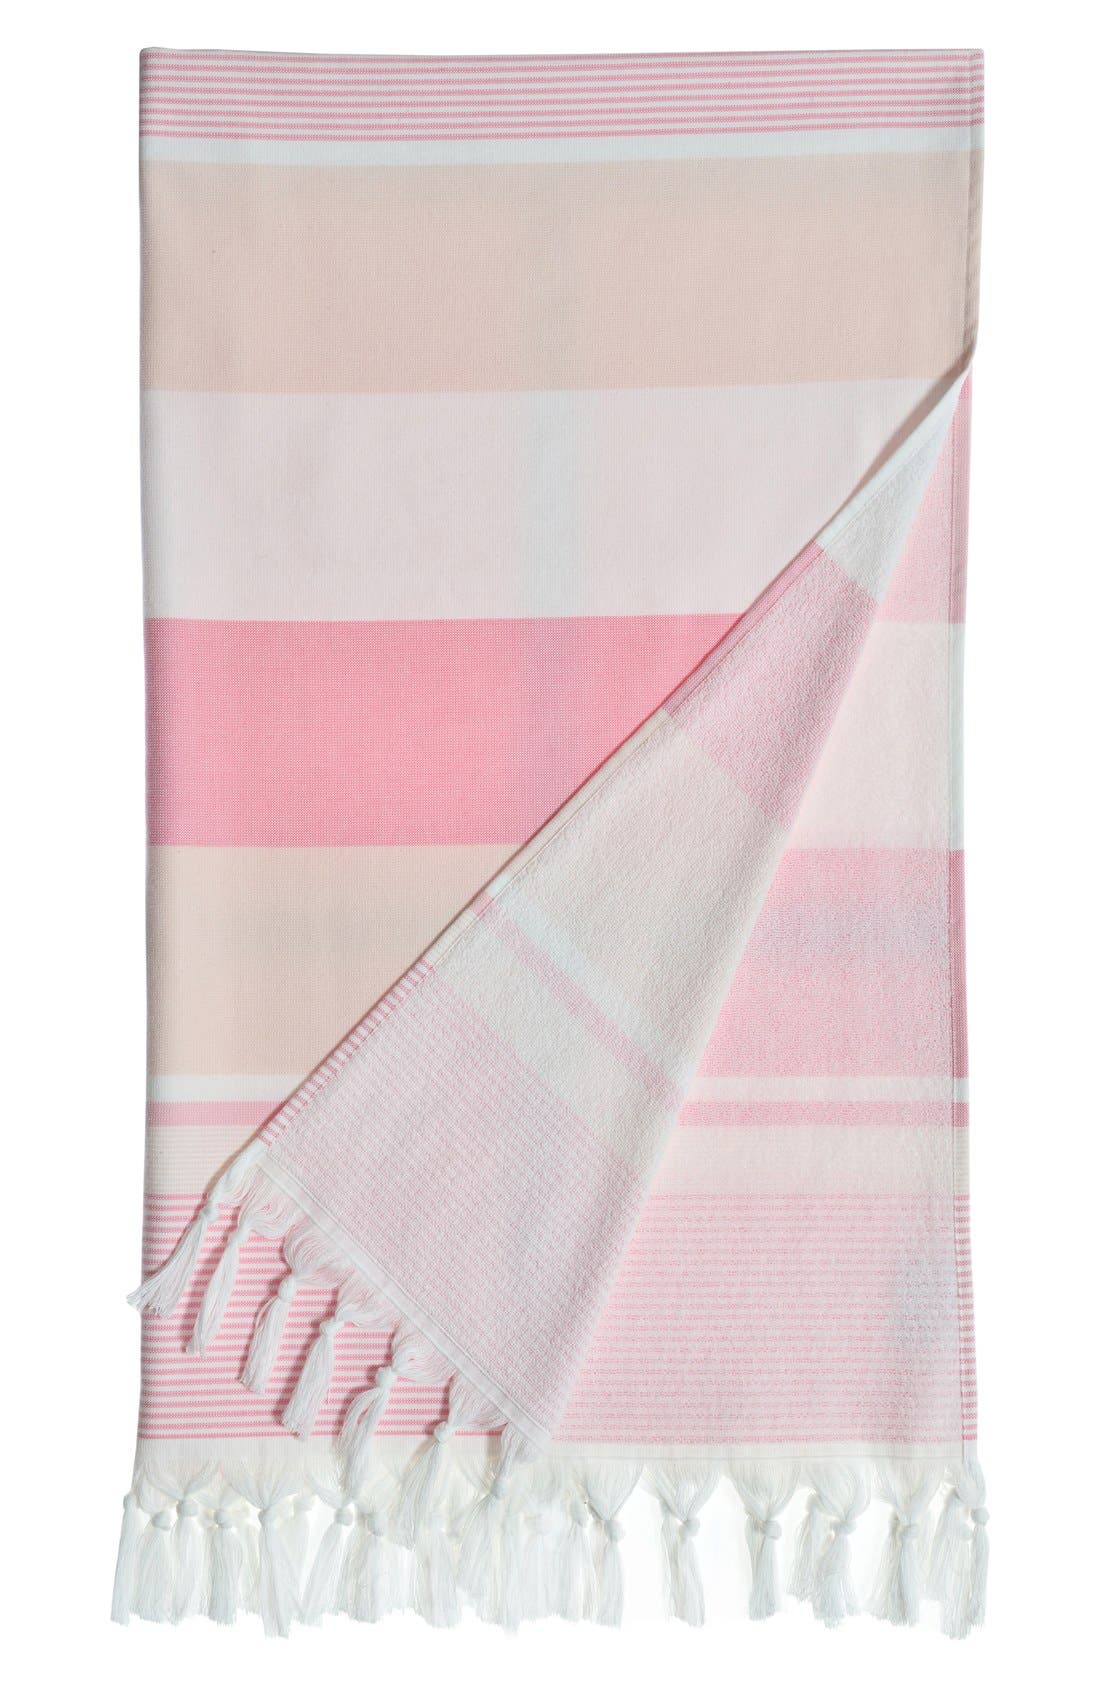 Linum Home Textiles 'Summer Loving' Turkish Pestemal Towel